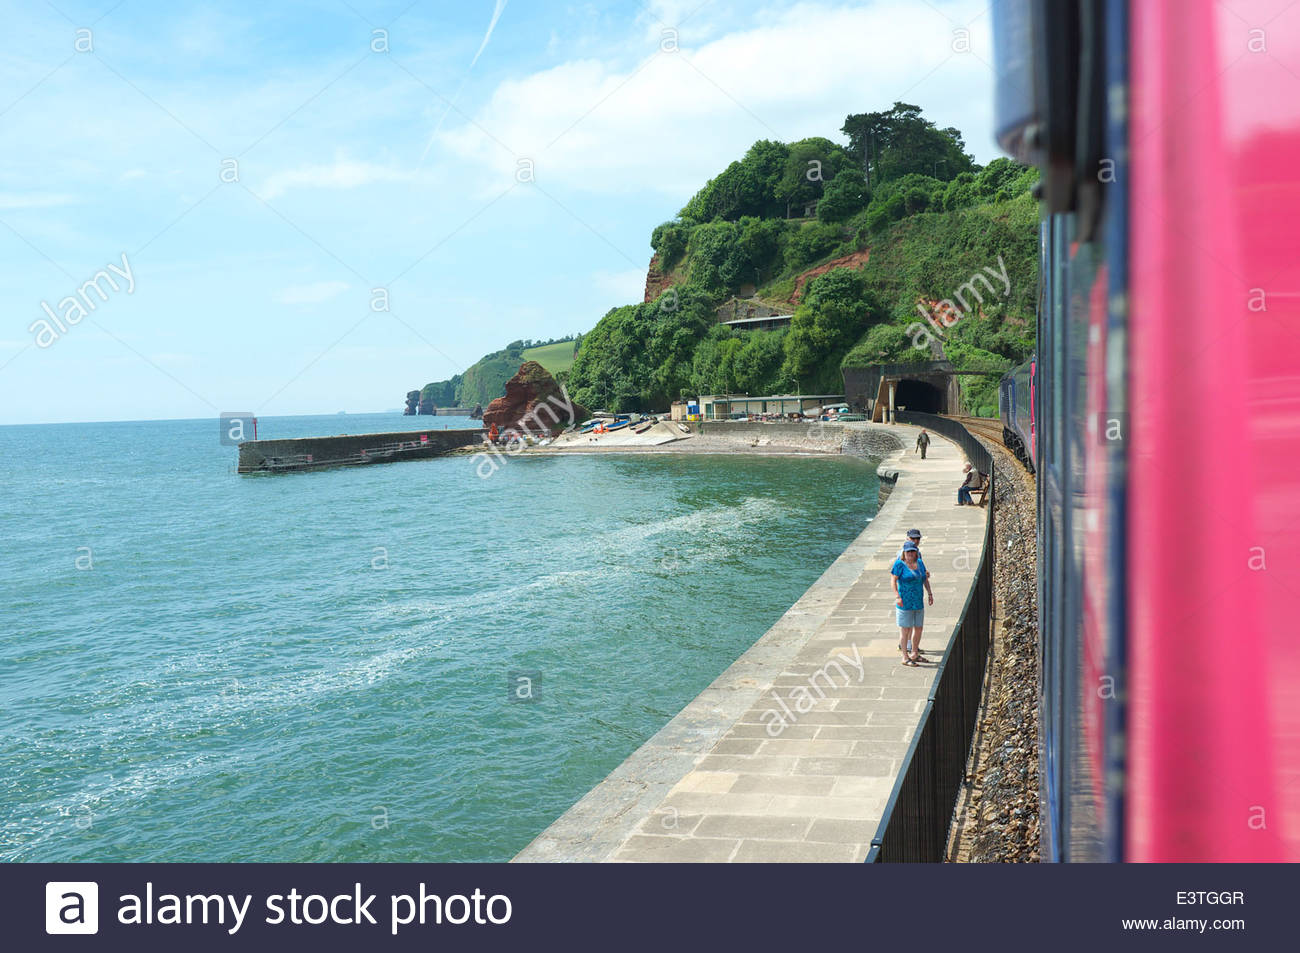 A London Paddington to Plymouth train passes through Dawlish, along the famous seawall route in south Devon, UK. - Stock Image